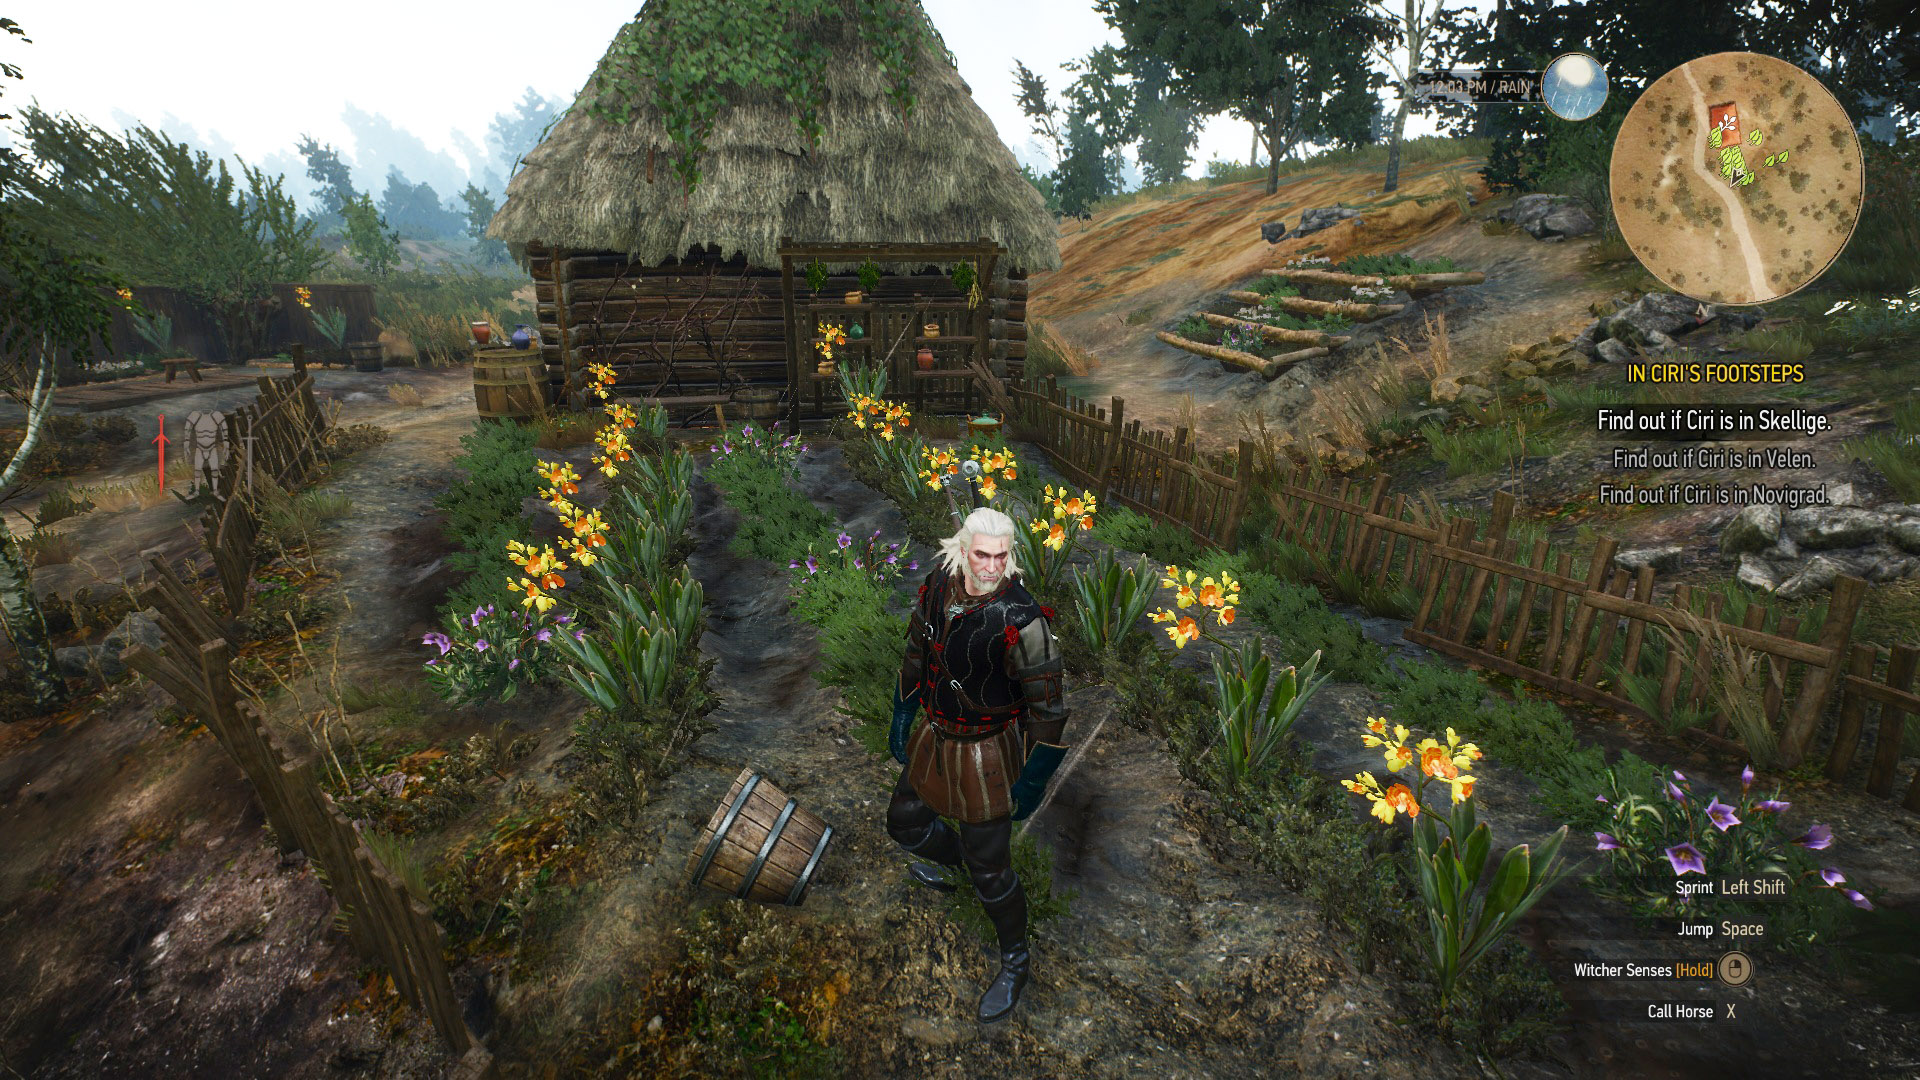 herb locations the witcher 3